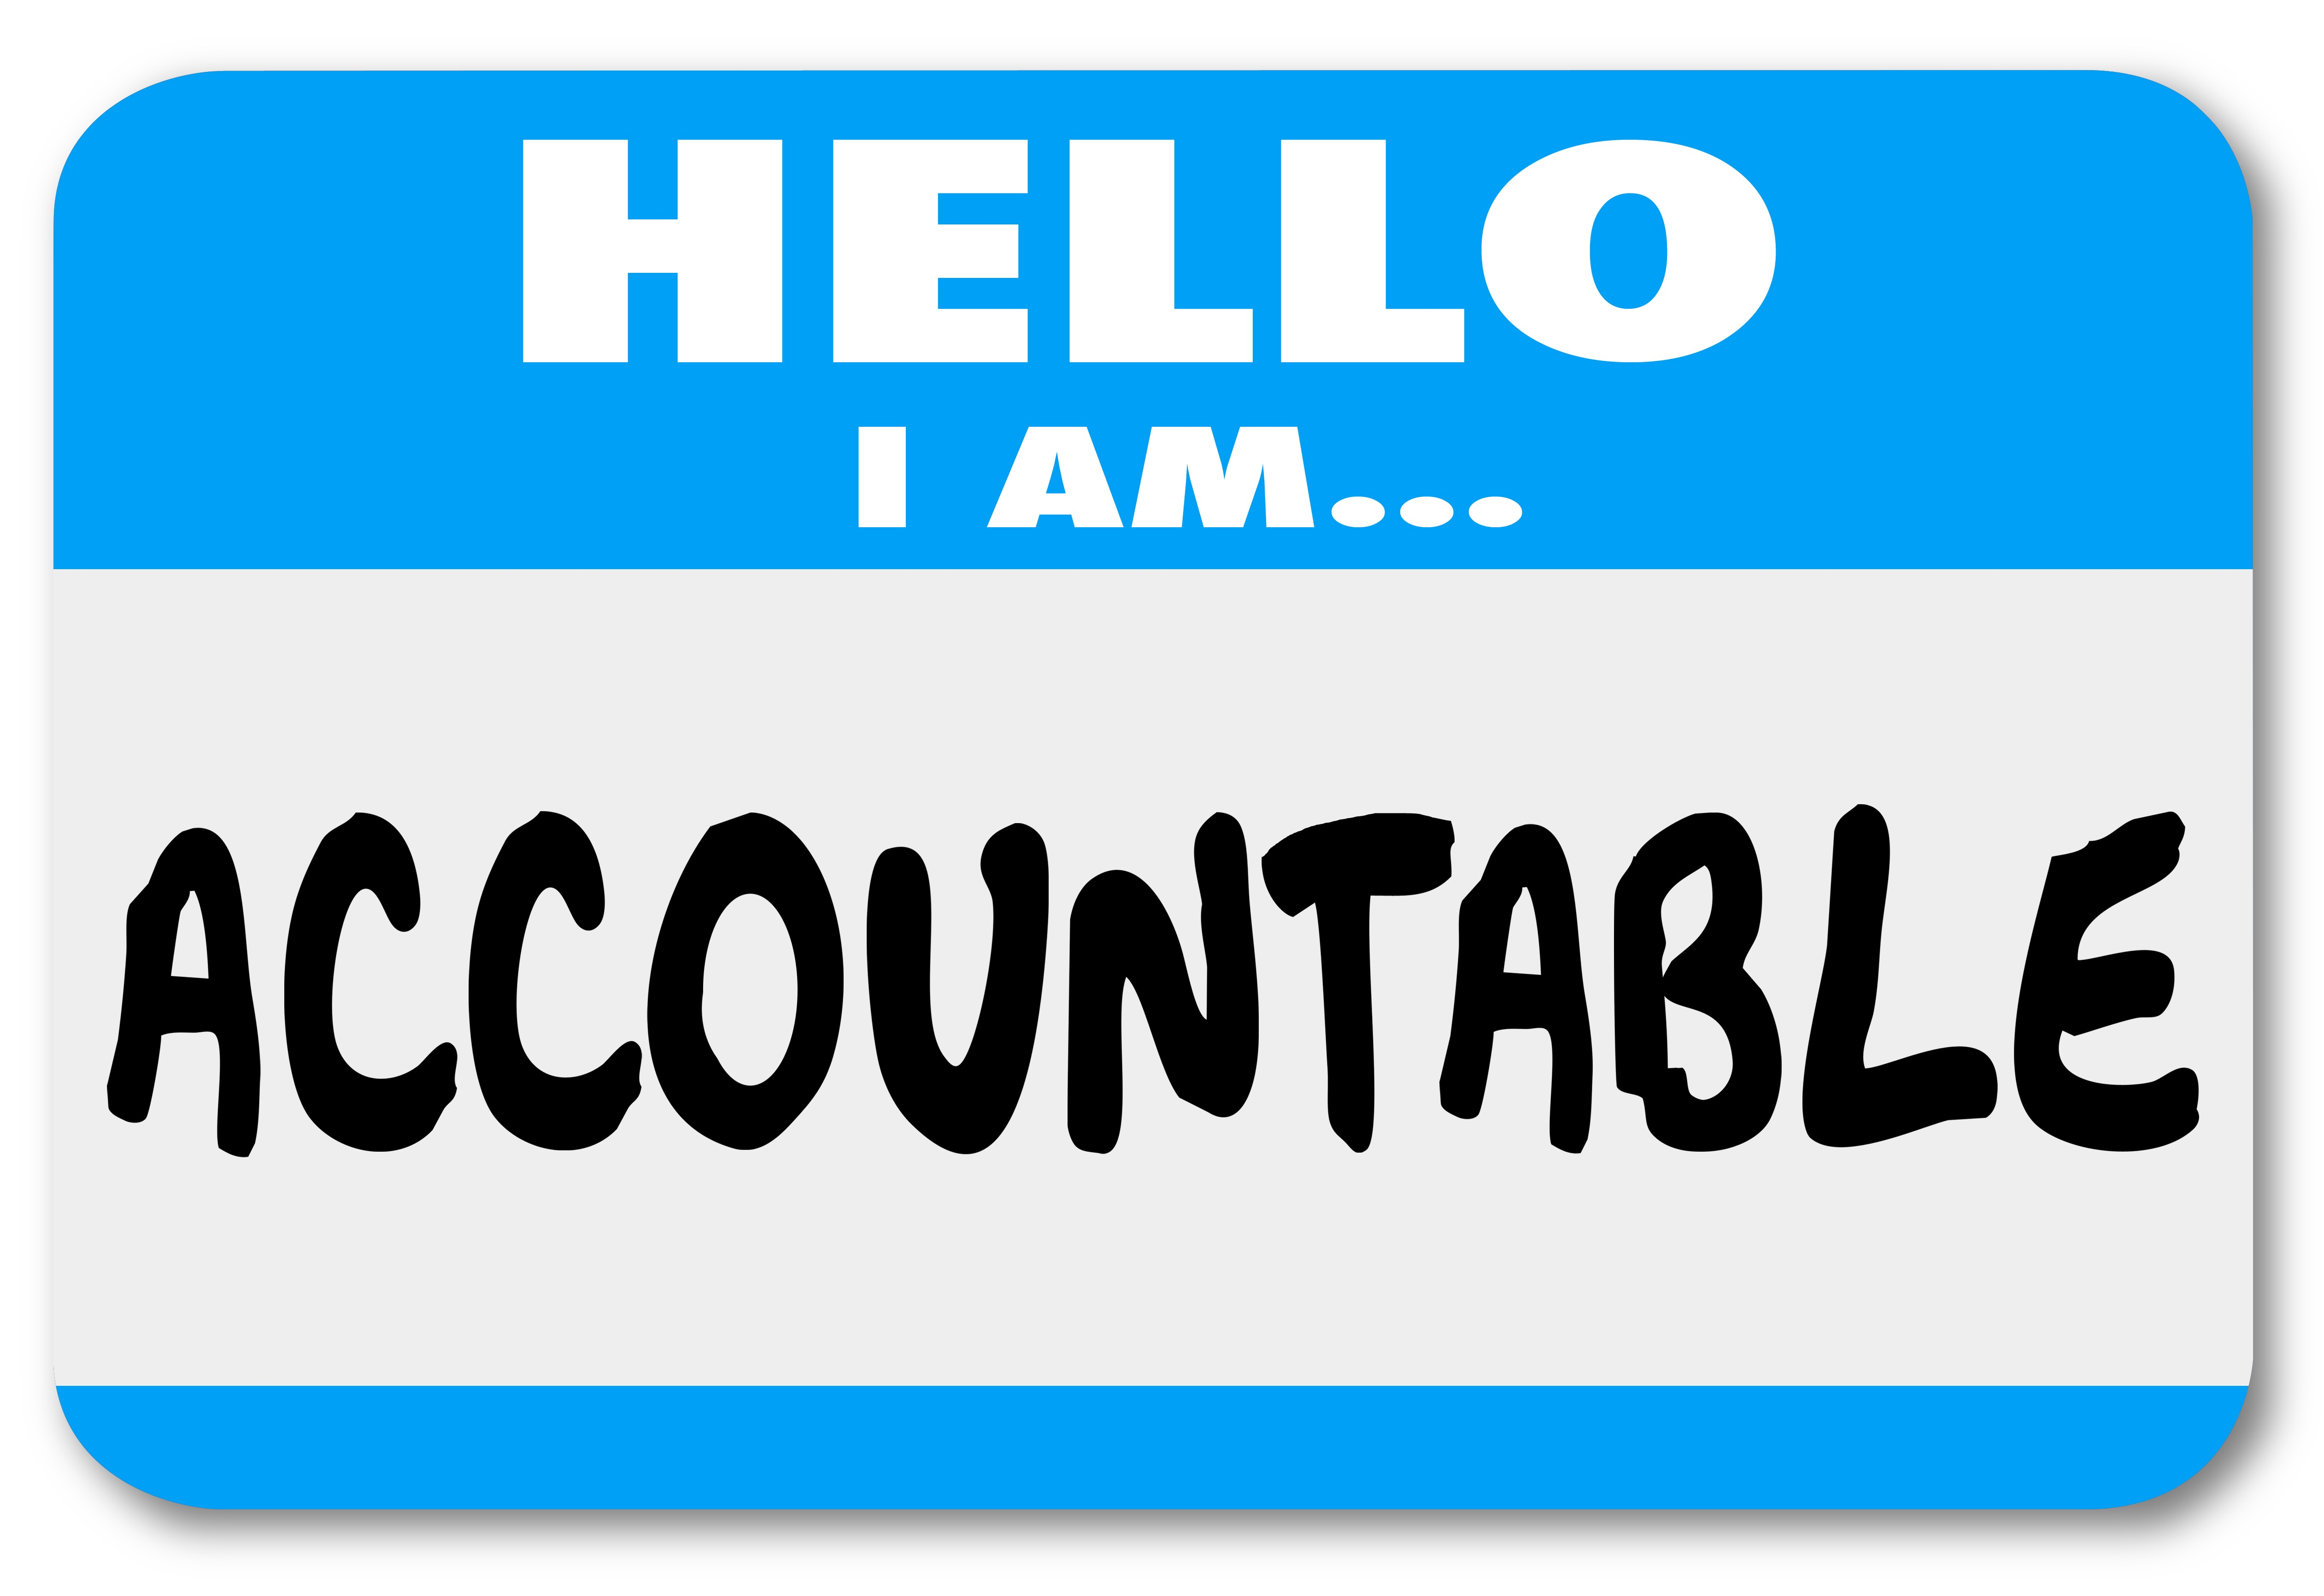 Is Your Team Accountable?